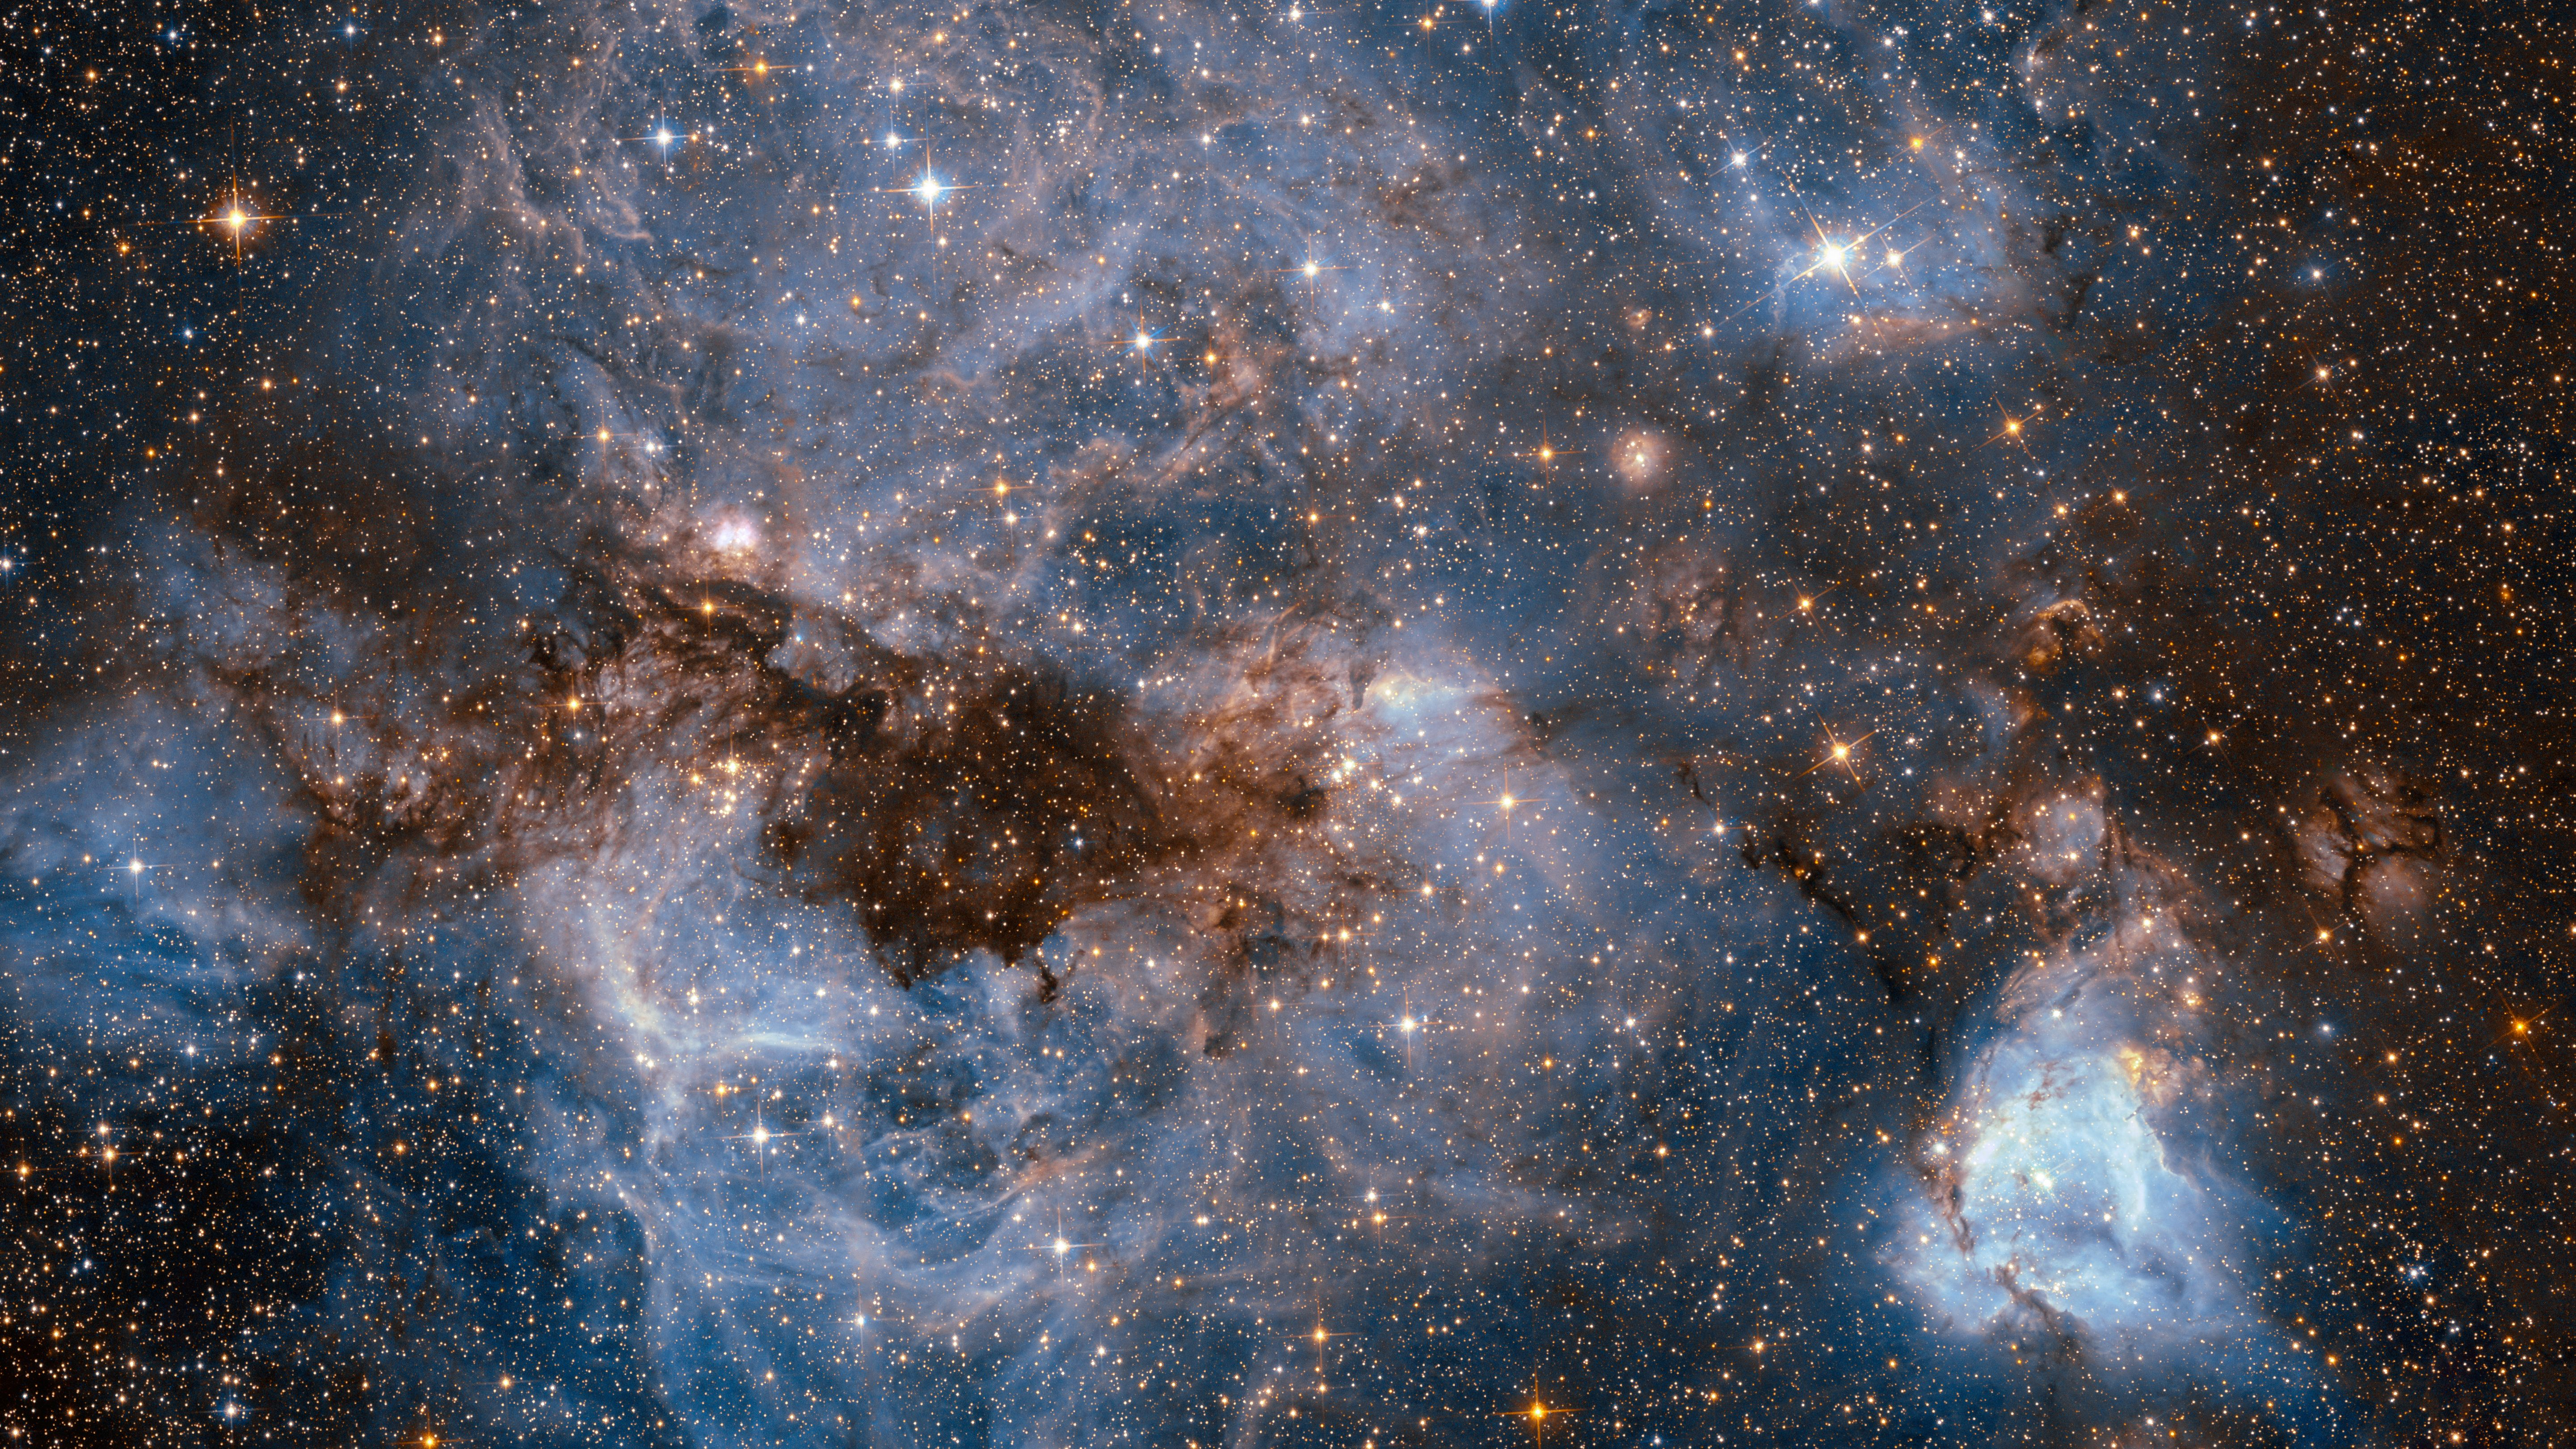 This shot from the NASA/ESA Hubble Space Telescope shows a maelstrom of glowing gas and dark dust within one of the Milky Way's satellite galaxies, the Large Magellanic Cloud (LMC).